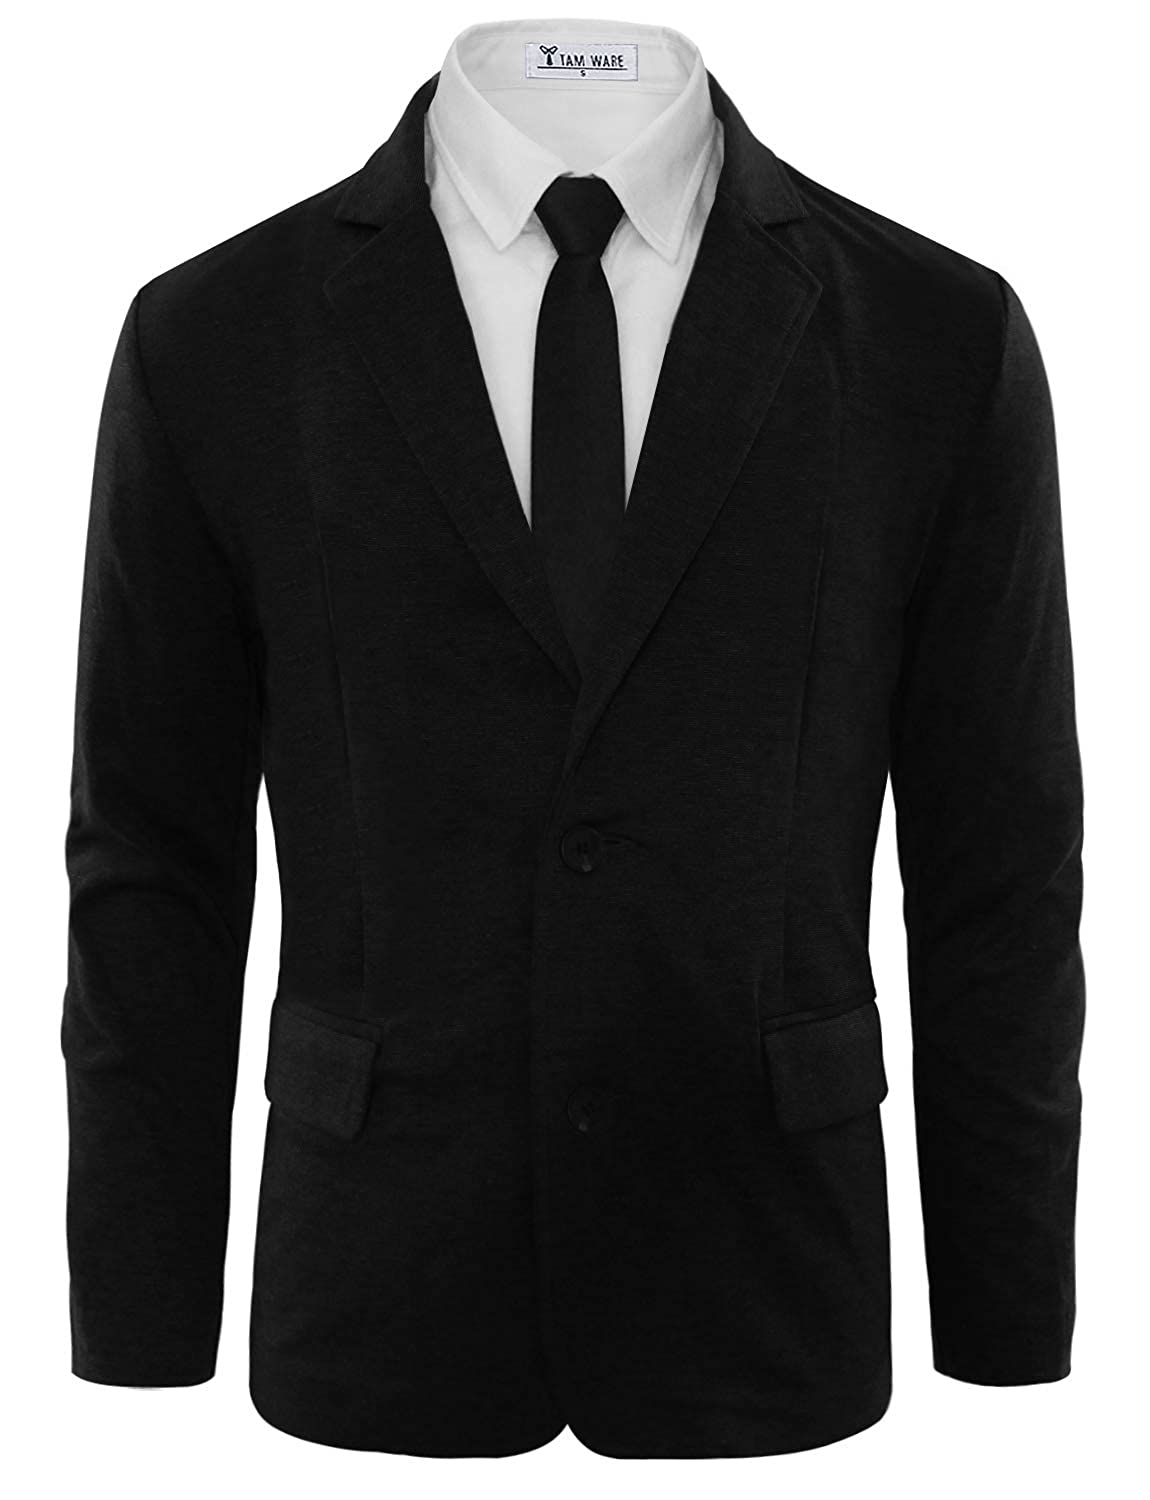 TAM WARE Mens Casual Slim Fit Single Breasted Two Button Blazer Jacket